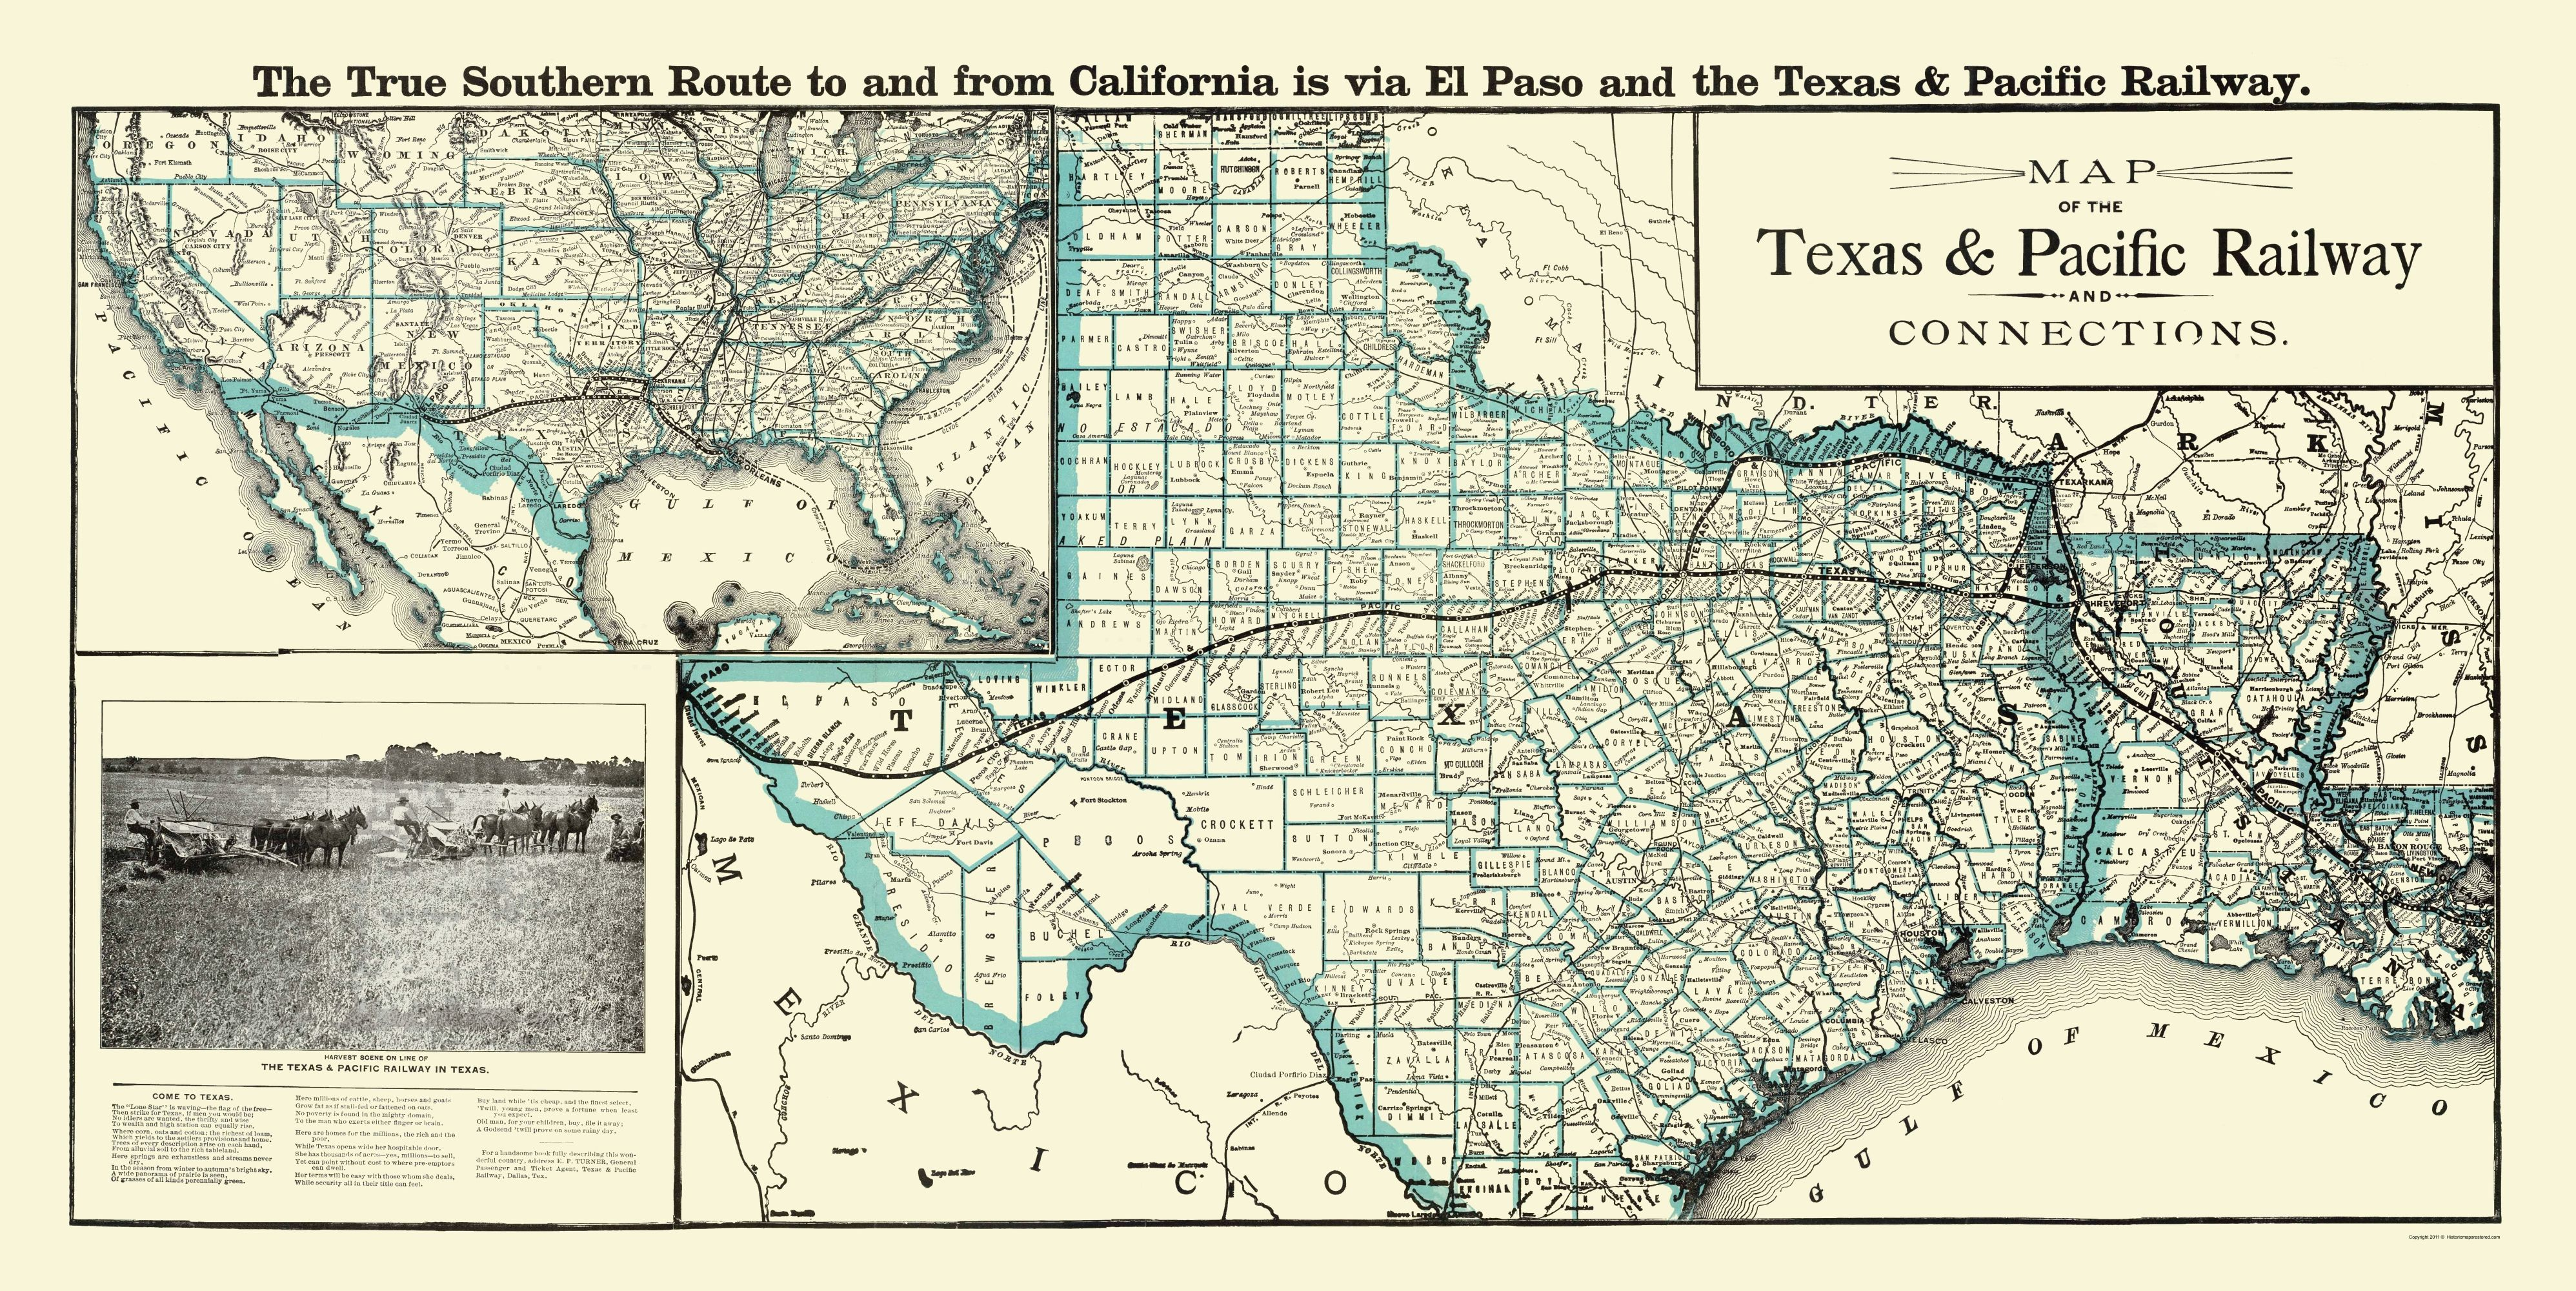 Map Of Texas Railroads.Old Railroad Map Texas And Pacific Railway With Connections 1903 23 X 45